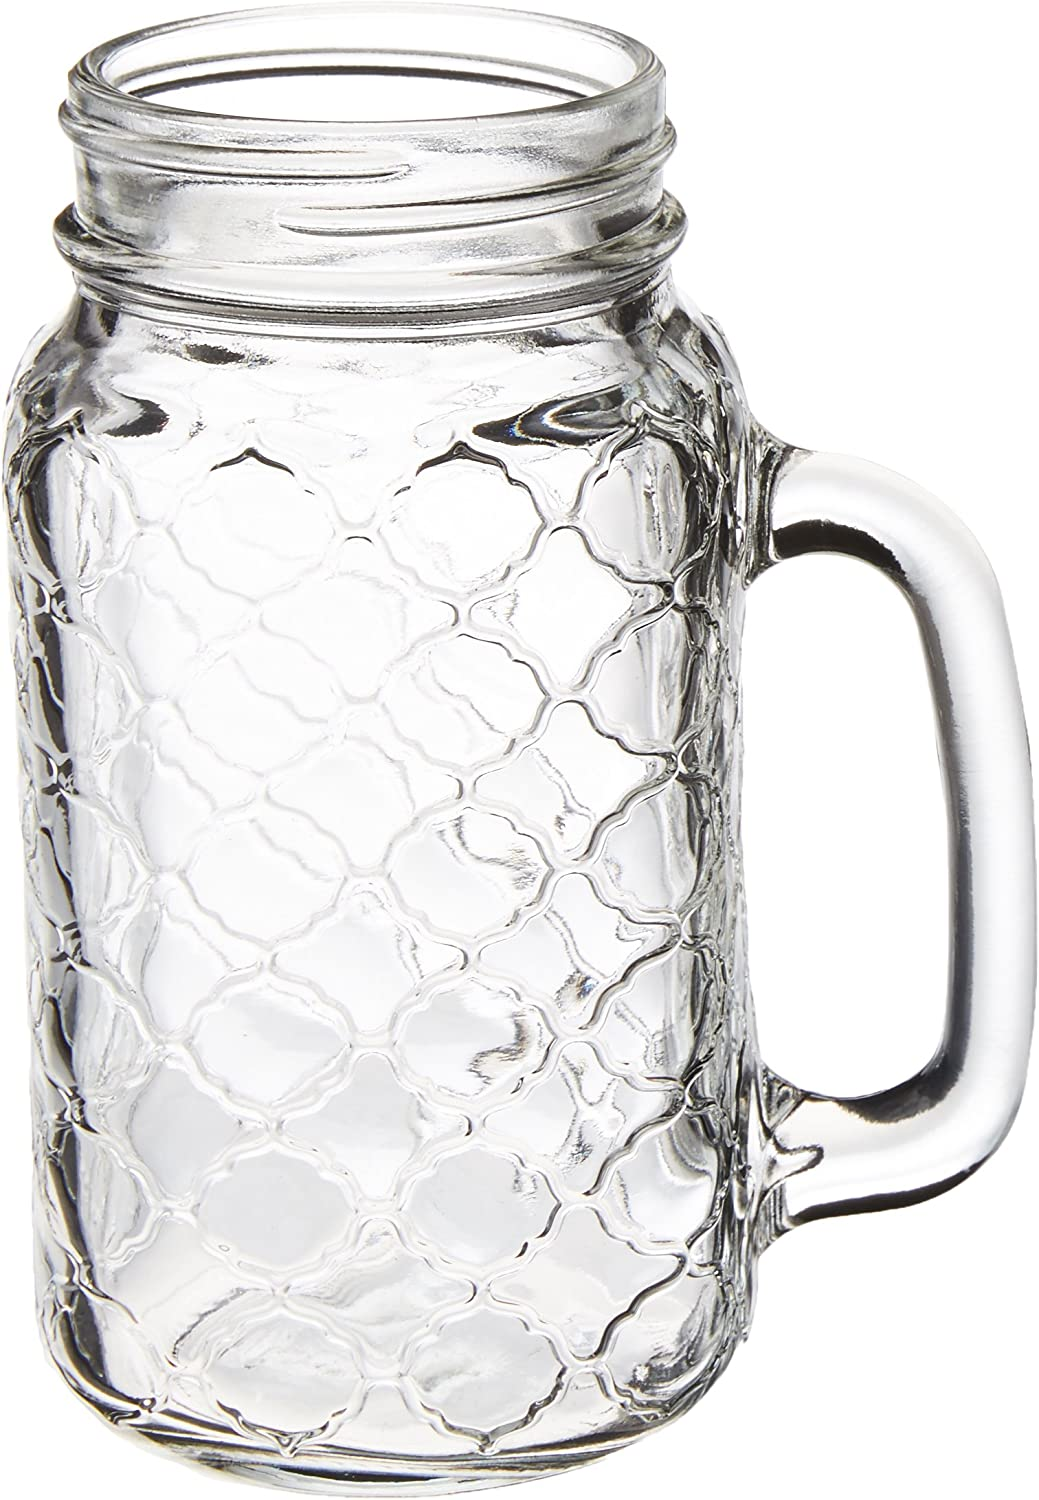 Circleware Garden Gate Yorkshire Mason Jar Mugs with Glass Handles, Set of 4 Beverage, Water, Juice, Beer Glassware Drinking Cups, 24 oz